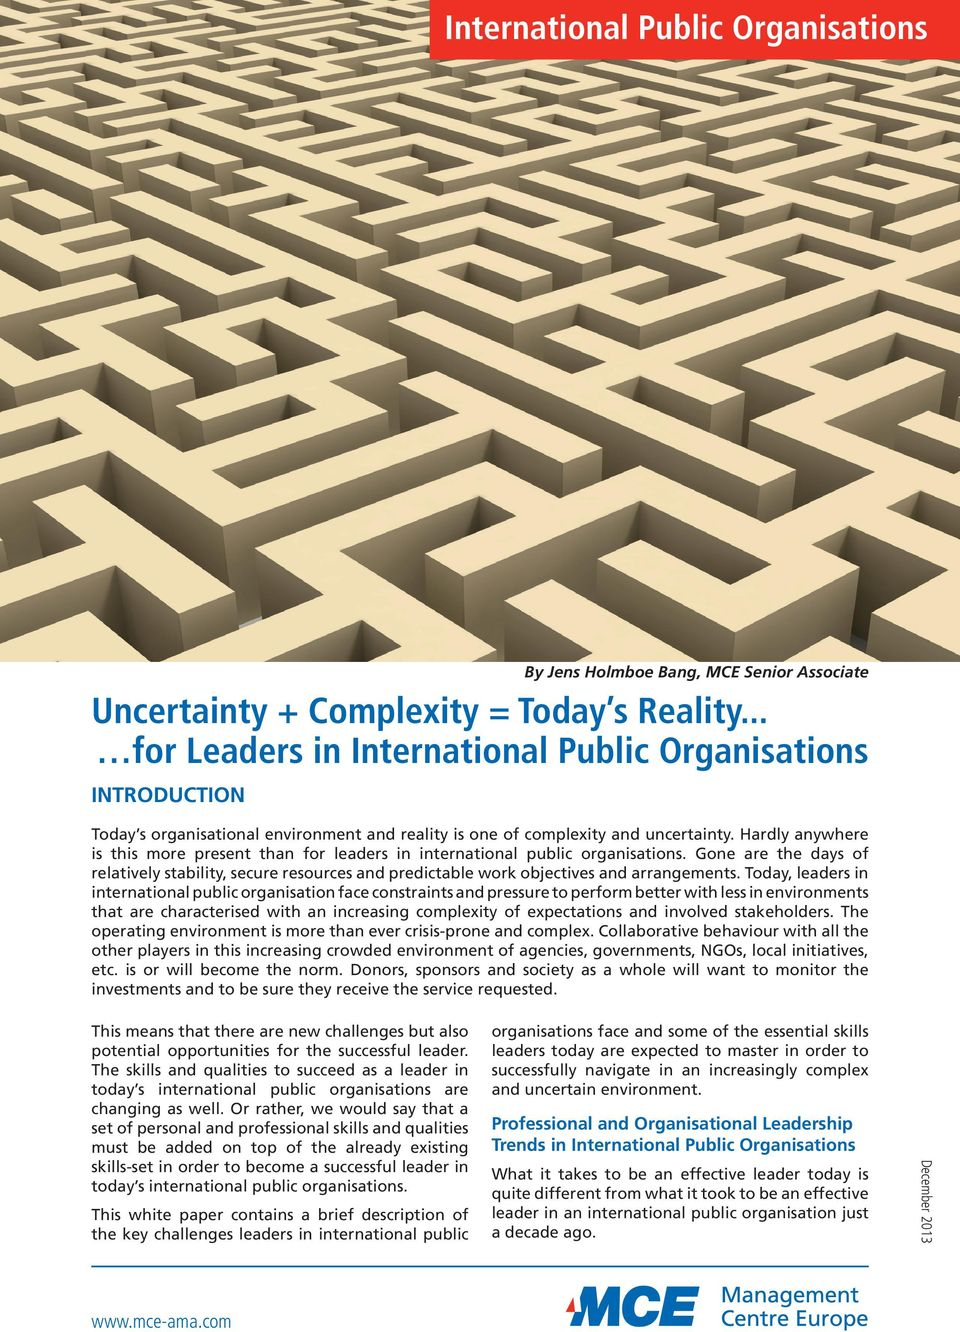 Hardly anywhere is this more present than for leaders in international public organisations.